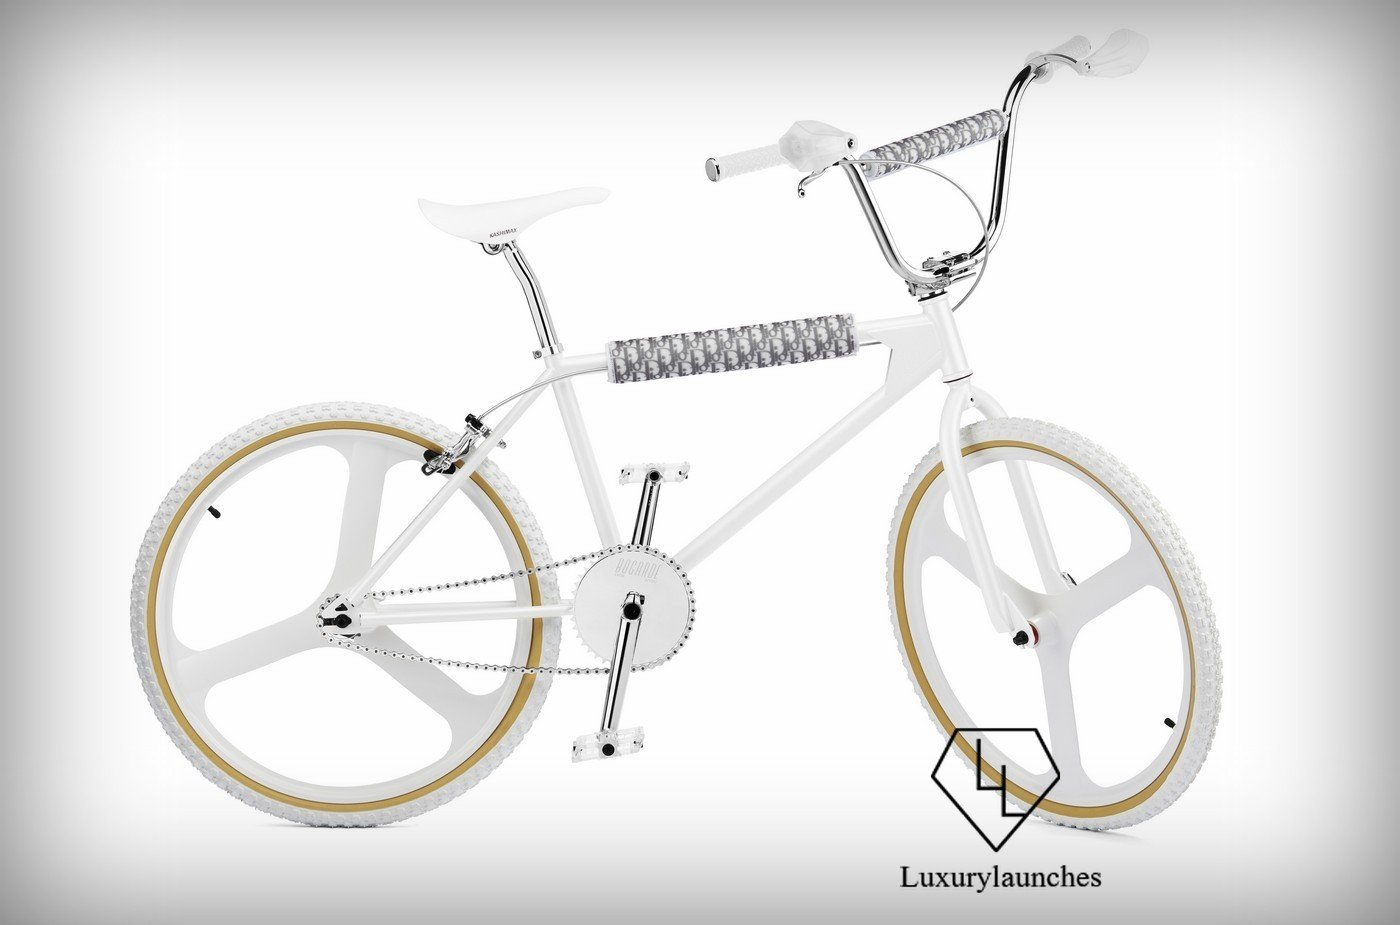 Dior and Bogarde team up yet again to create a limited edition pearl-finished BMX bike